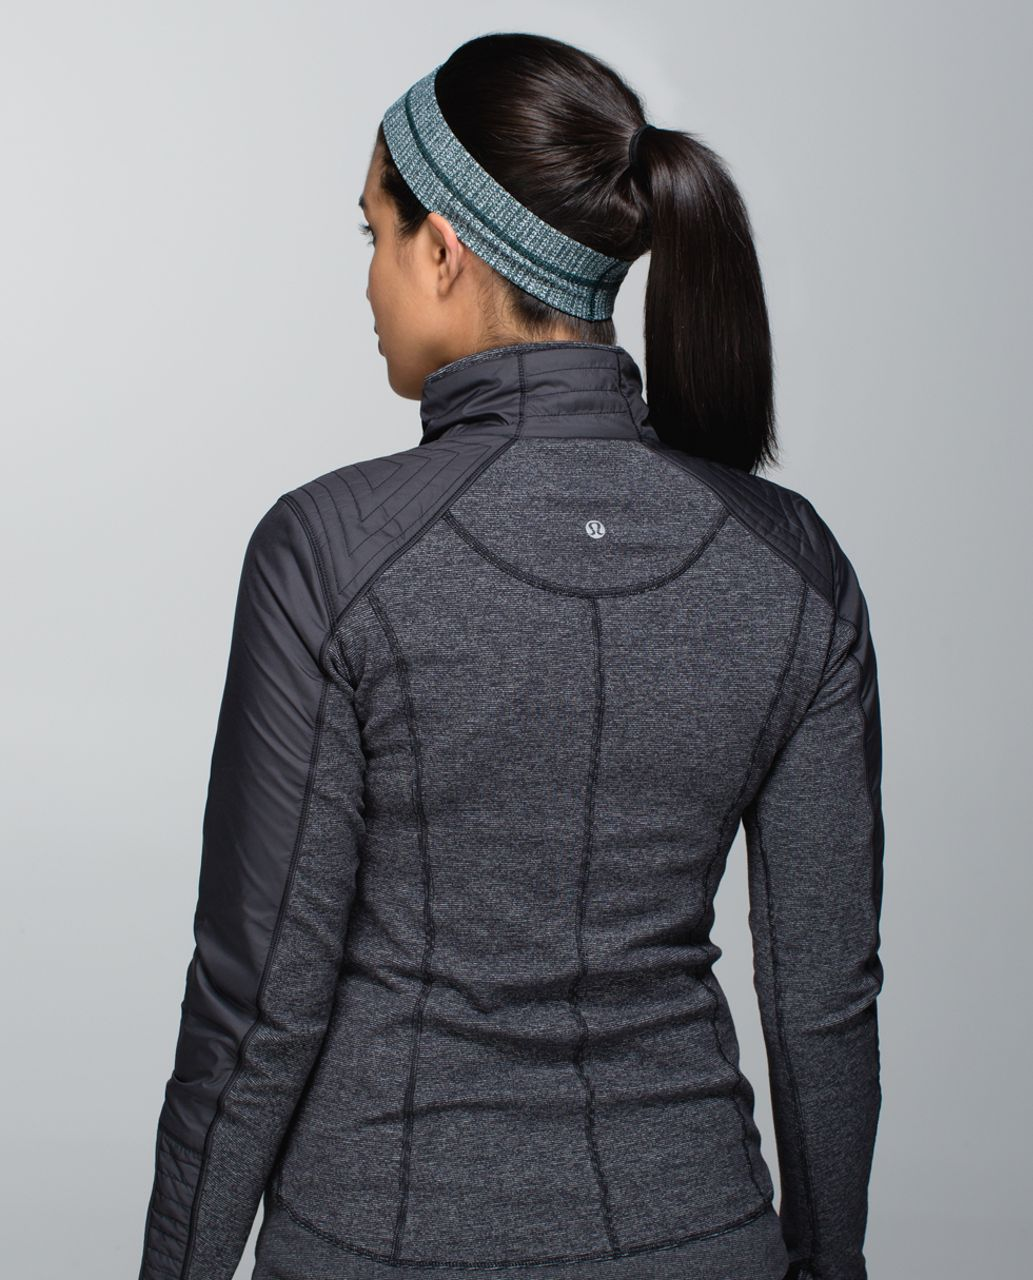 Lululemon Fly Away Tamer Headband - Fuel Green